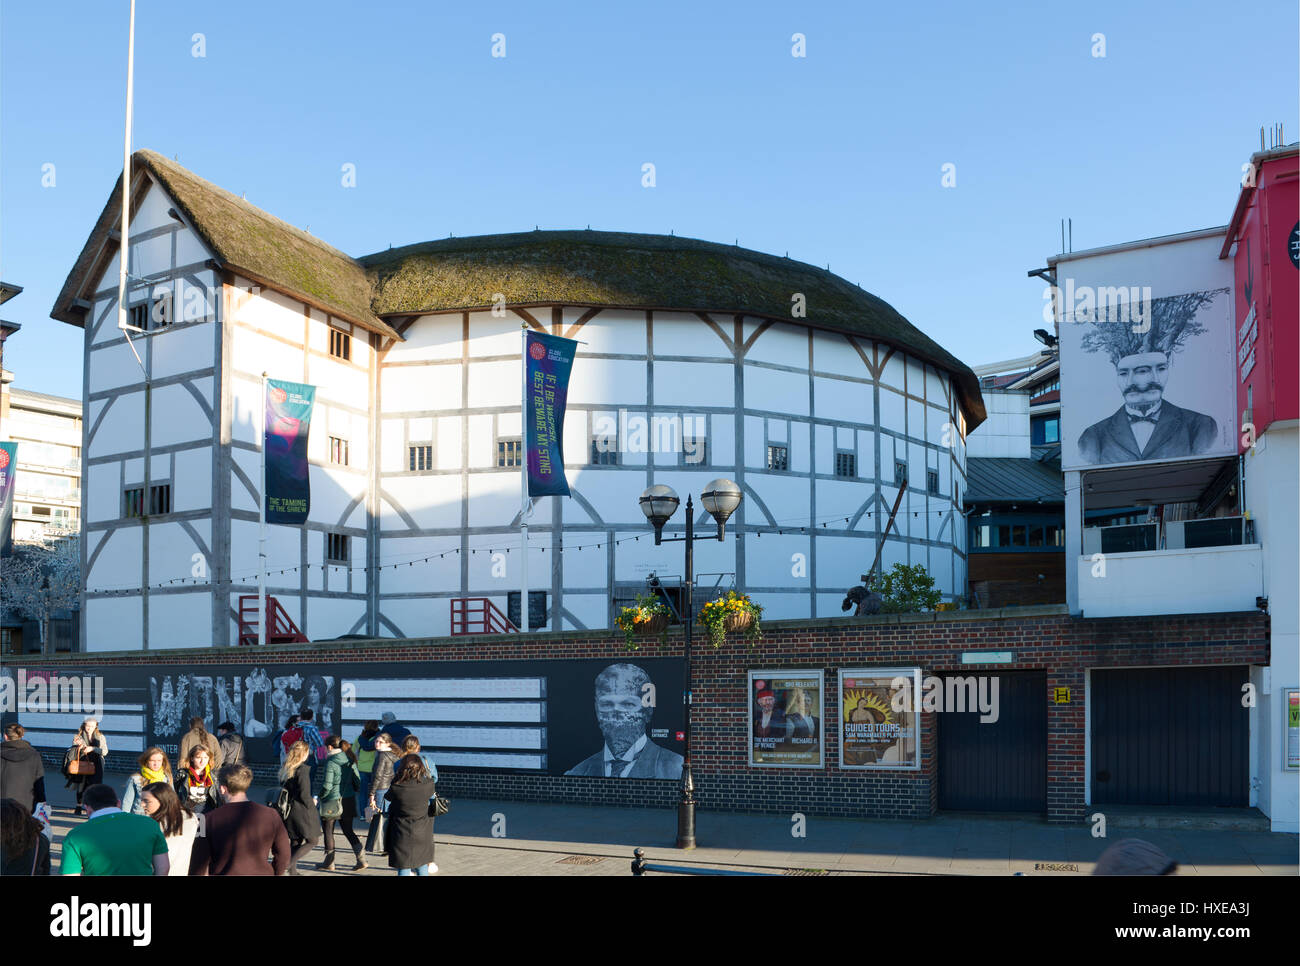 The reconstruction of Shakespeares Globe Theatre on the South Bank in Southwark, London, UK - Stock Image